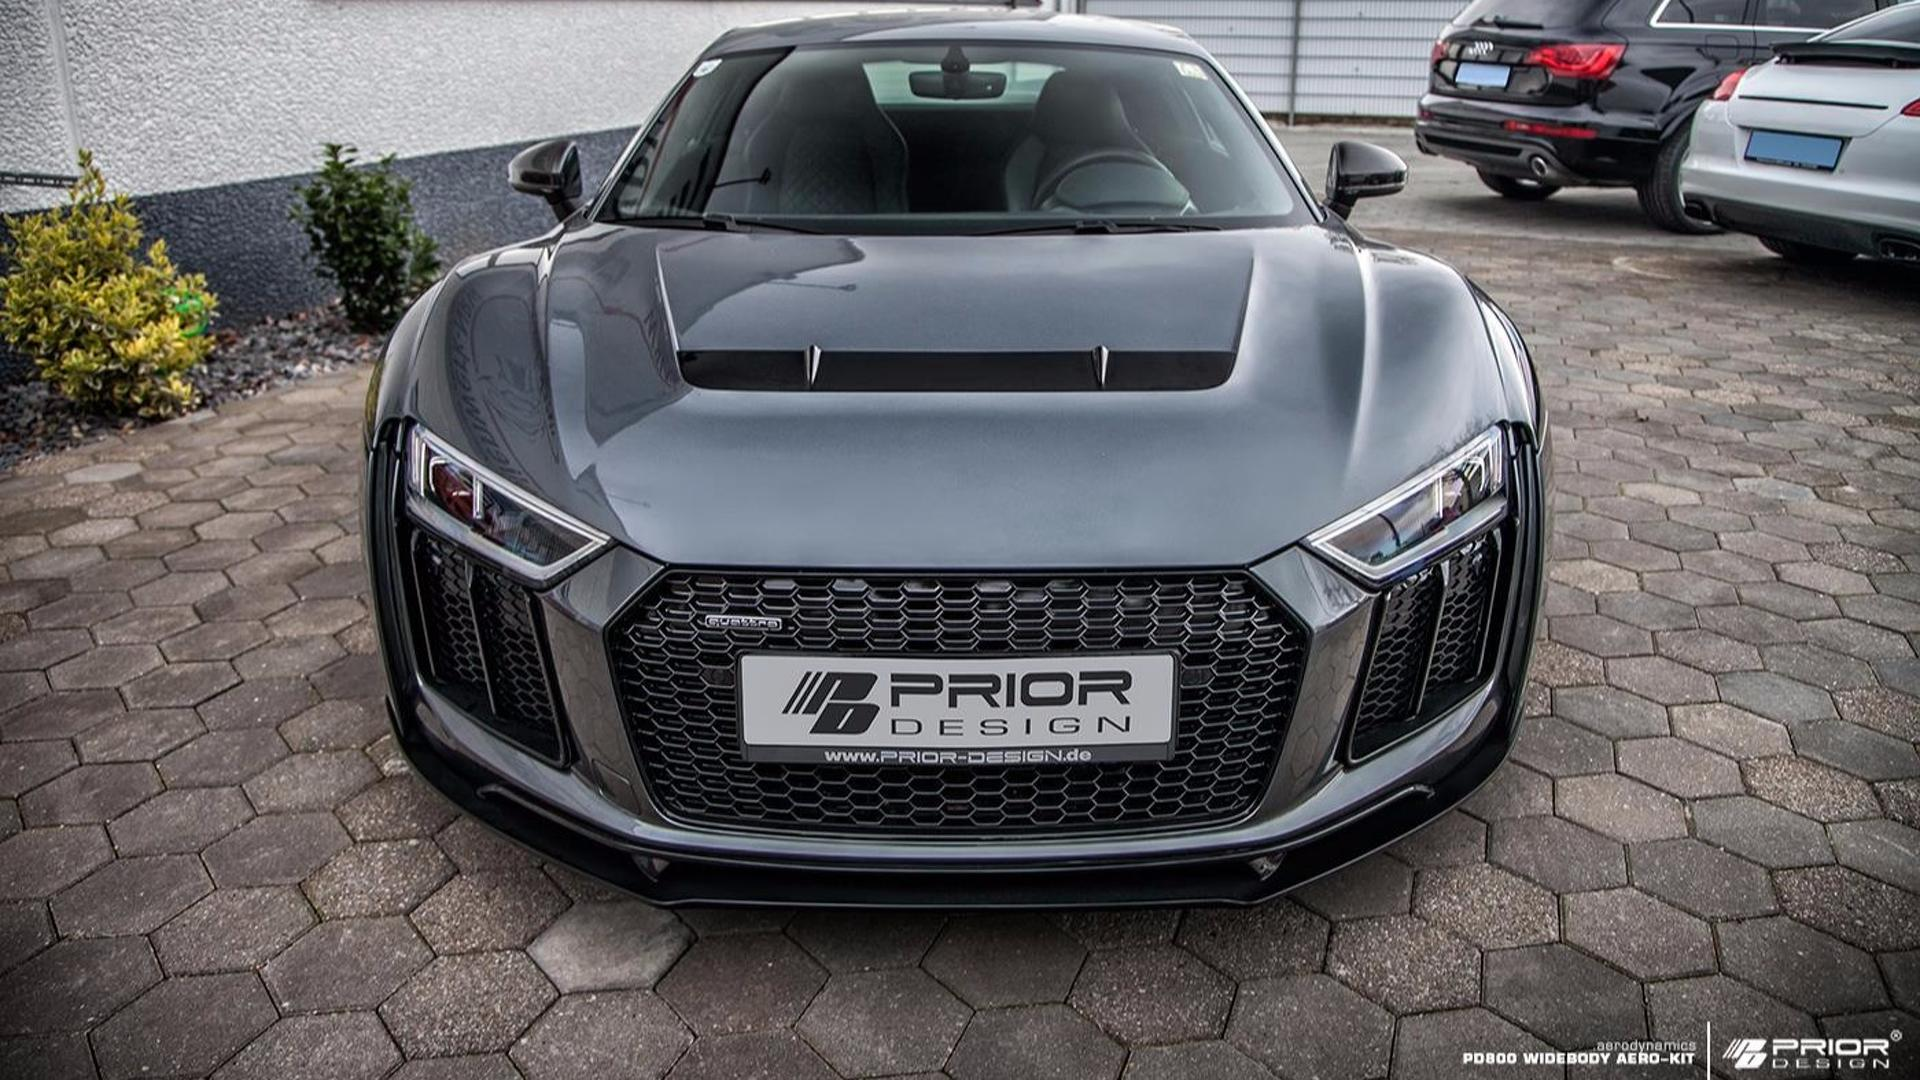 Audi R8 Muscles Up With Aggressive Wide Body Kit